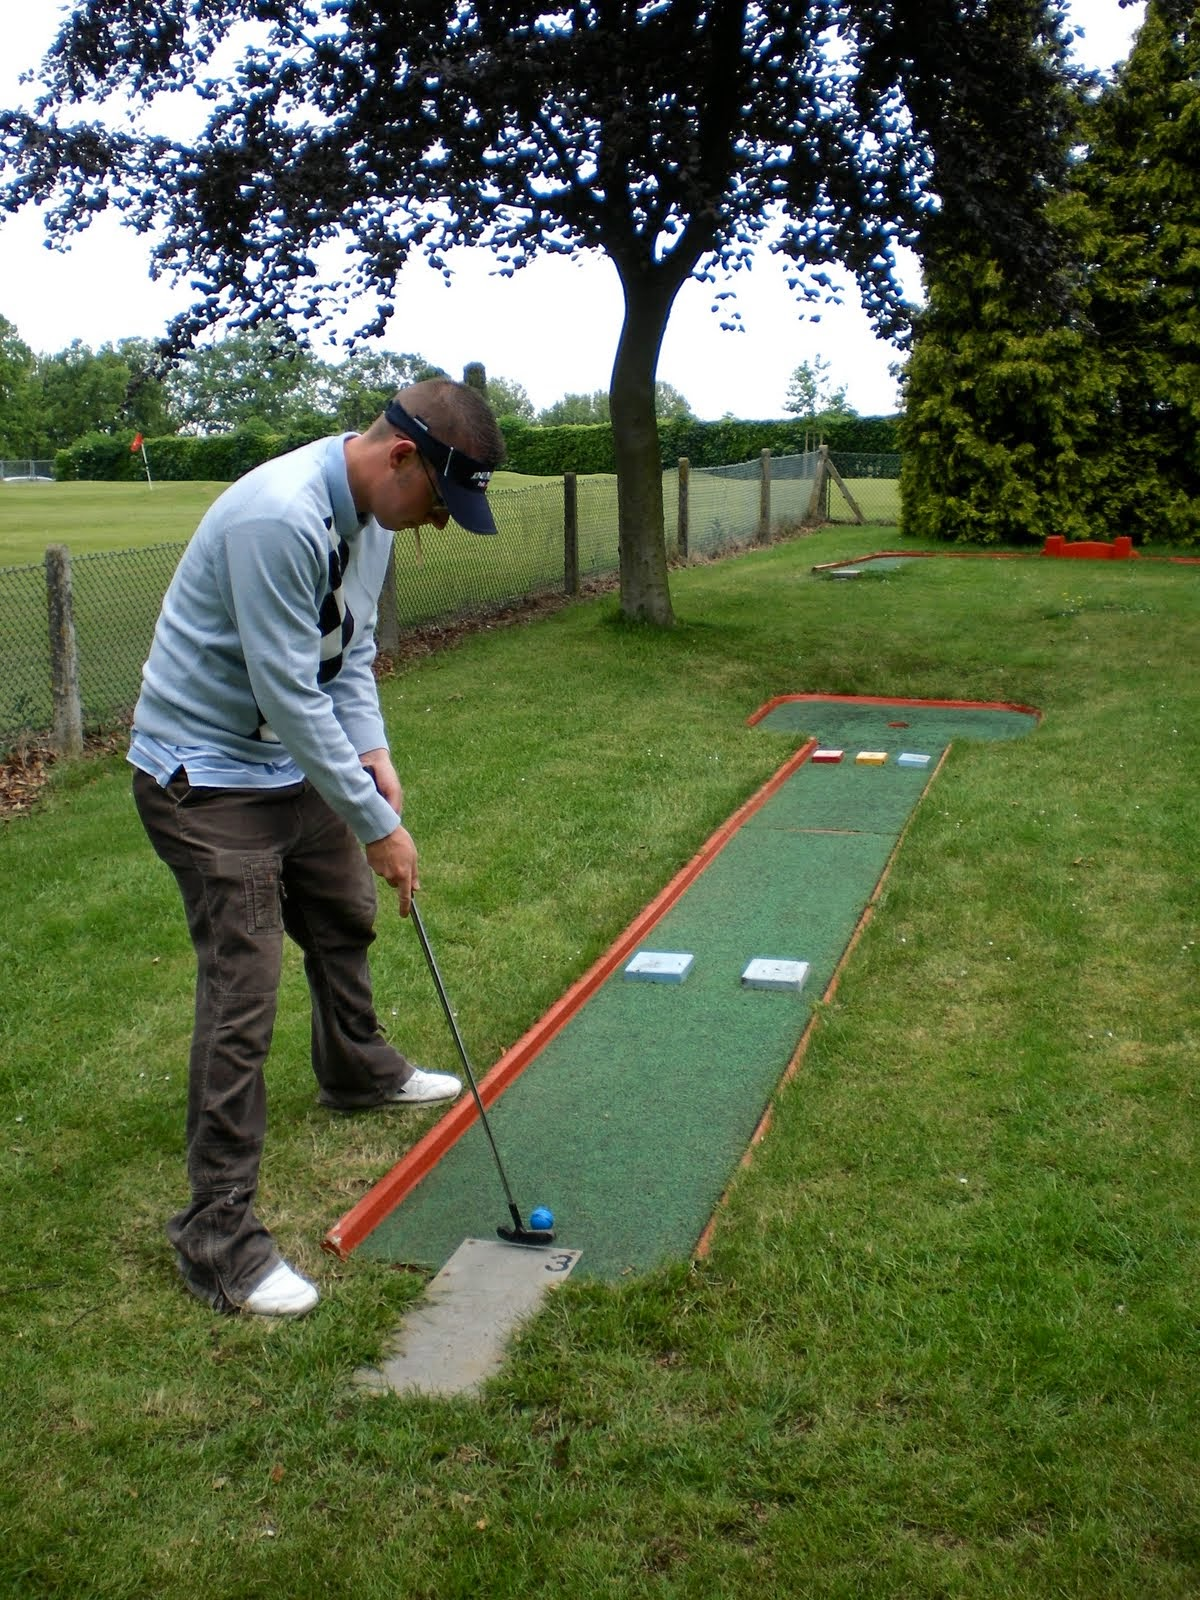 Playing hole 3 of the Wardown Park Crazy Golf course in Luton in 2007